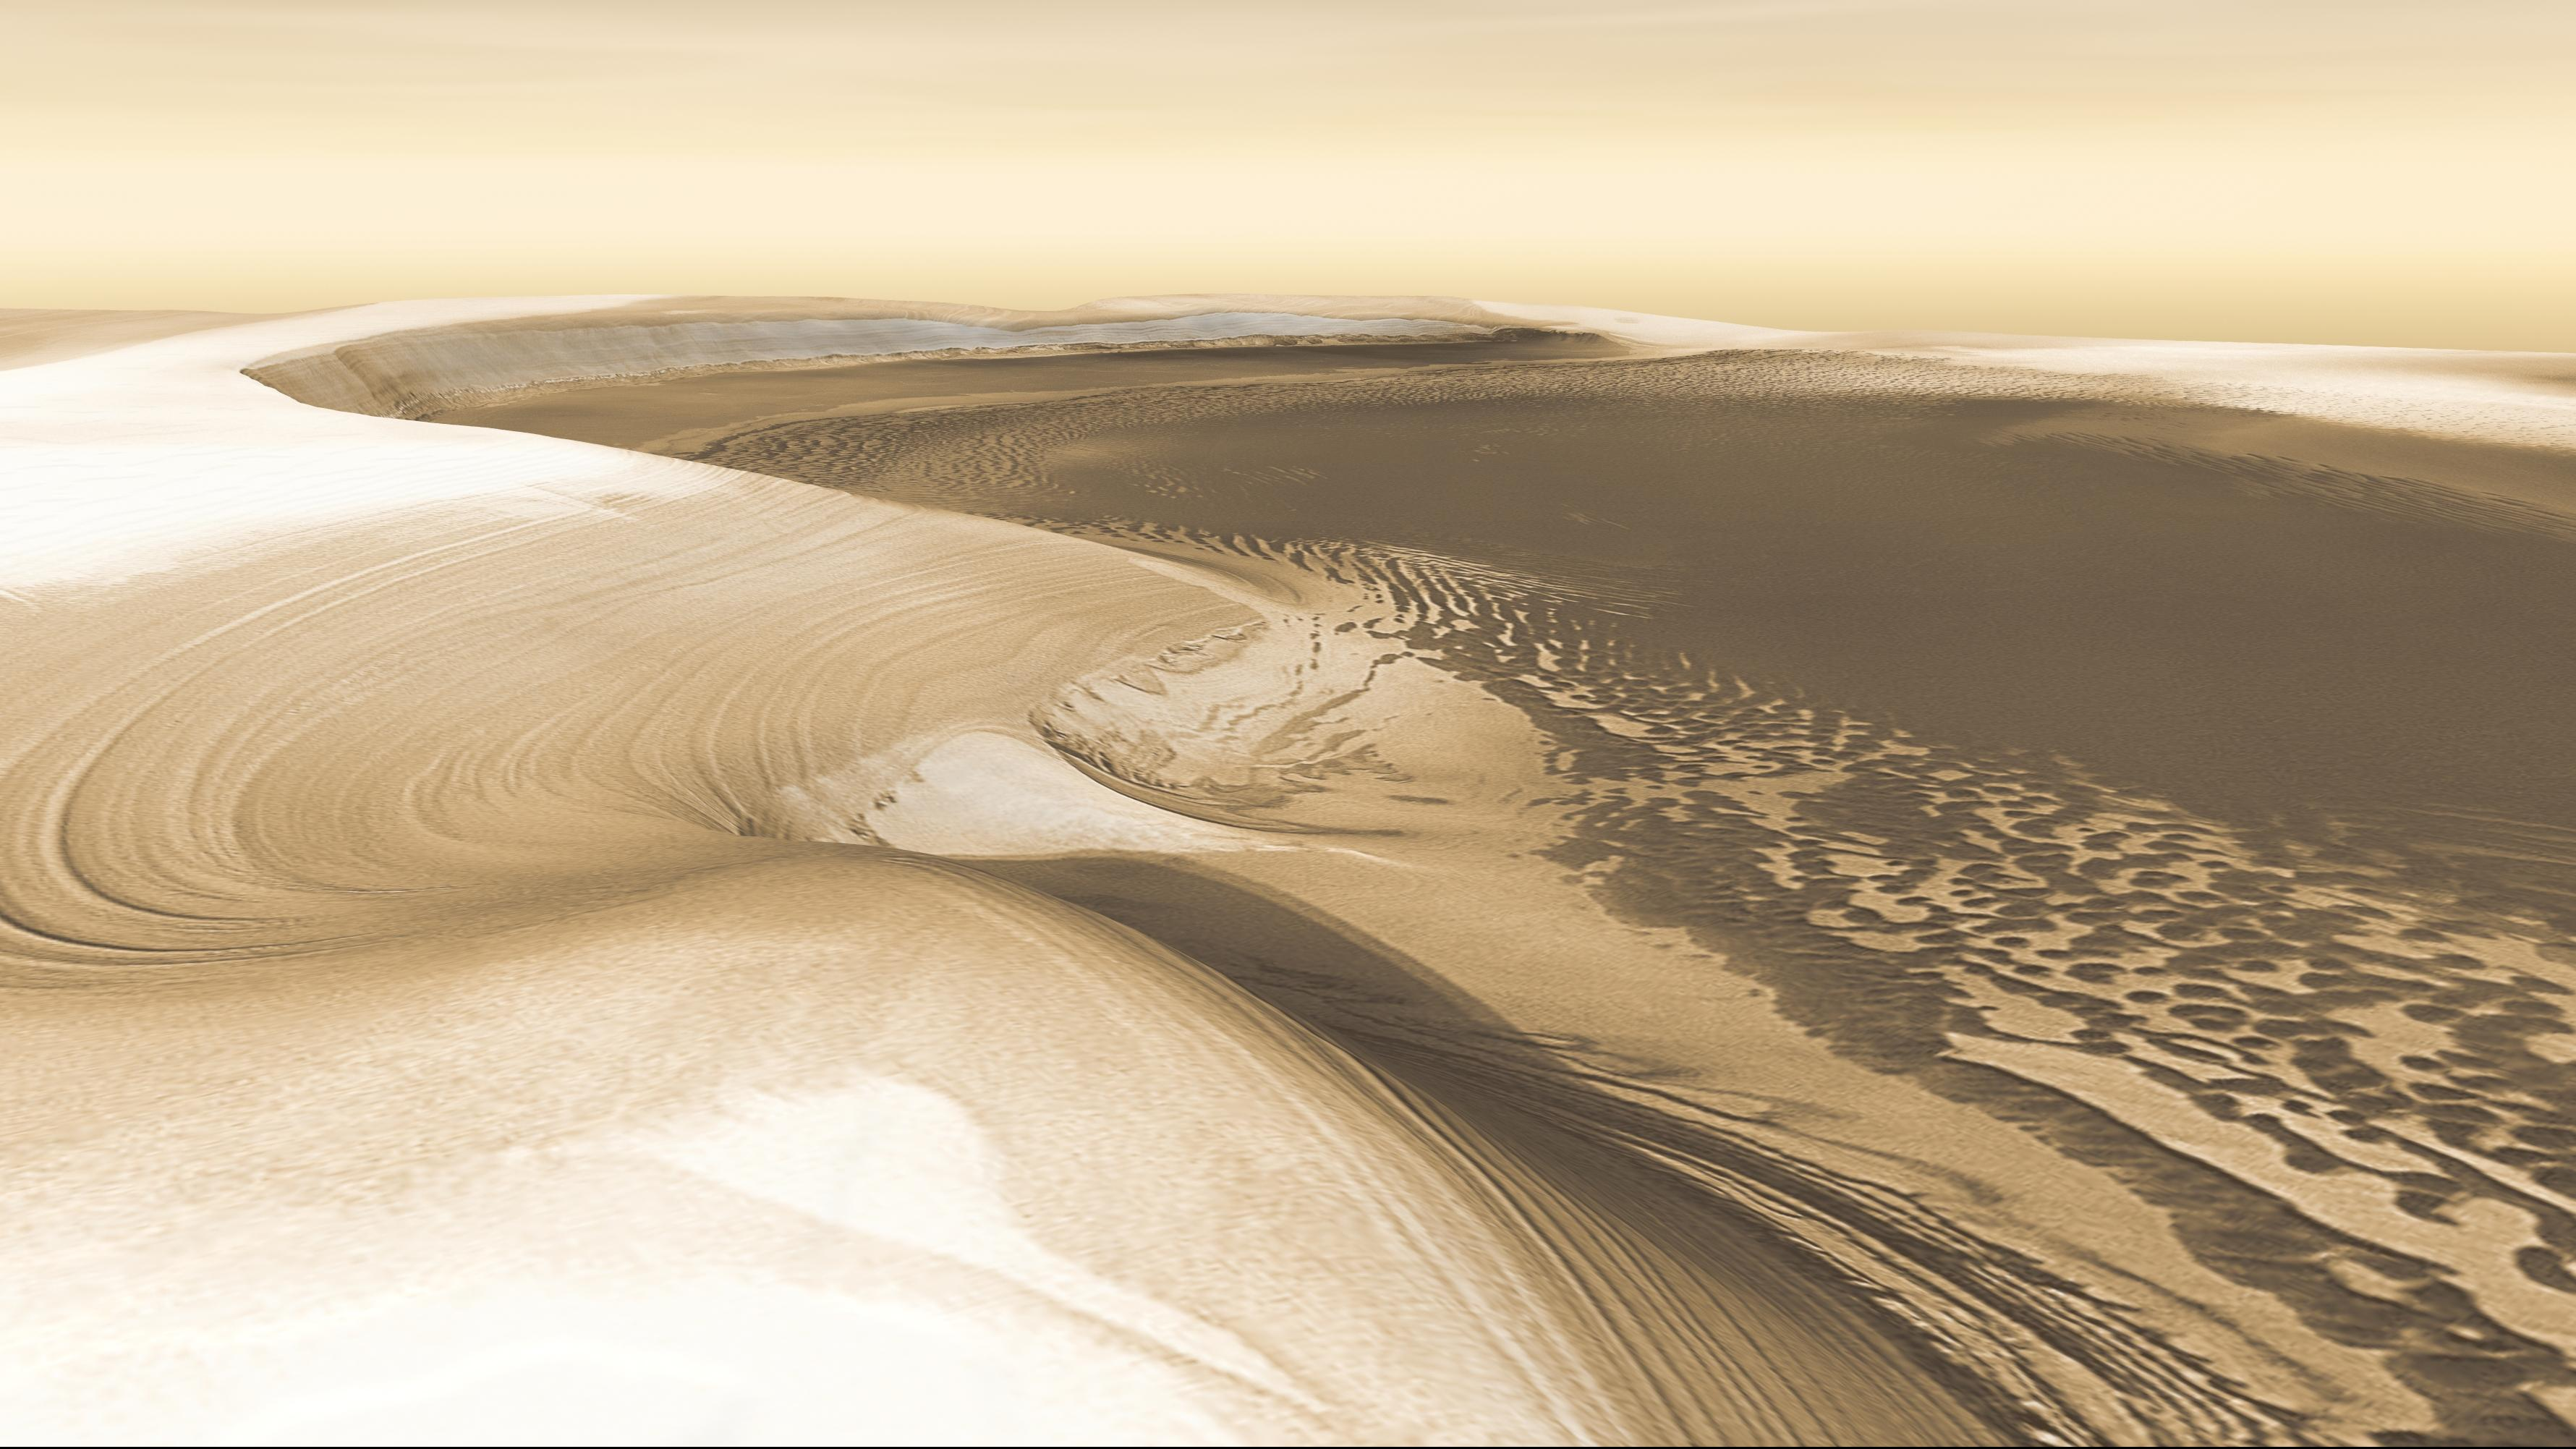 mars_polar_deposits_main.jpg